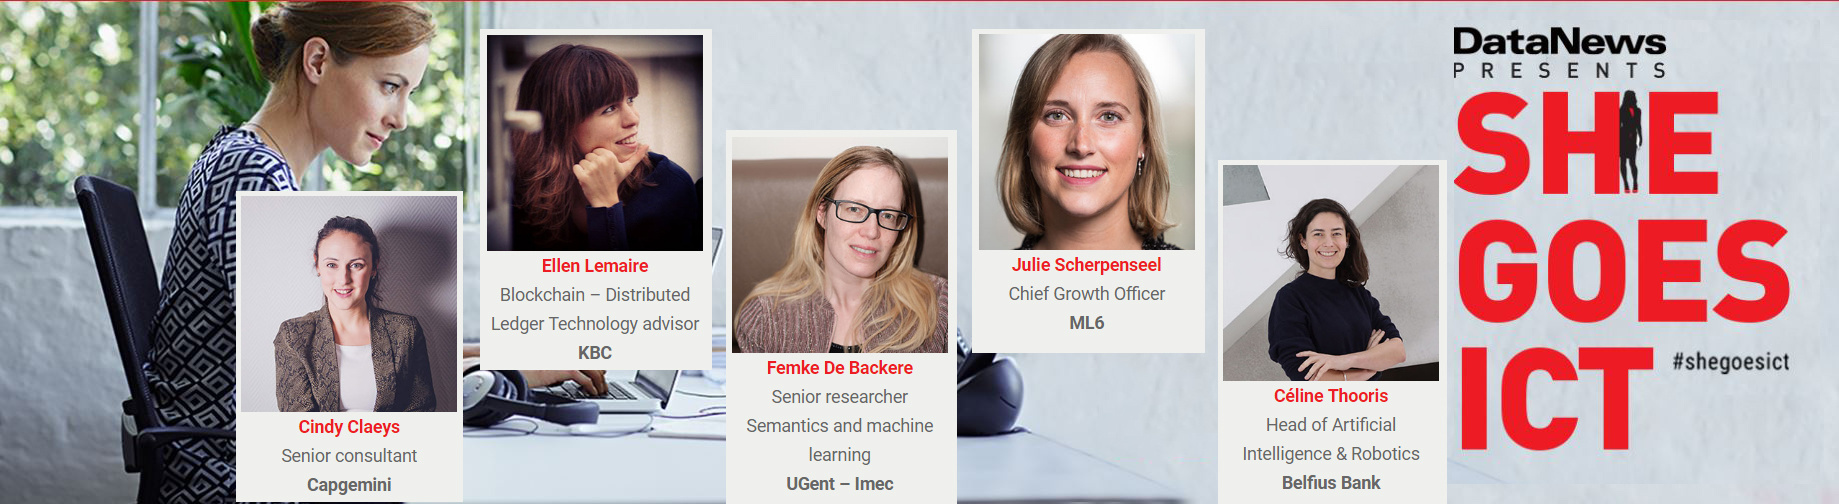 De 5 finalistes voor Young ICT Lady of the Year., DN